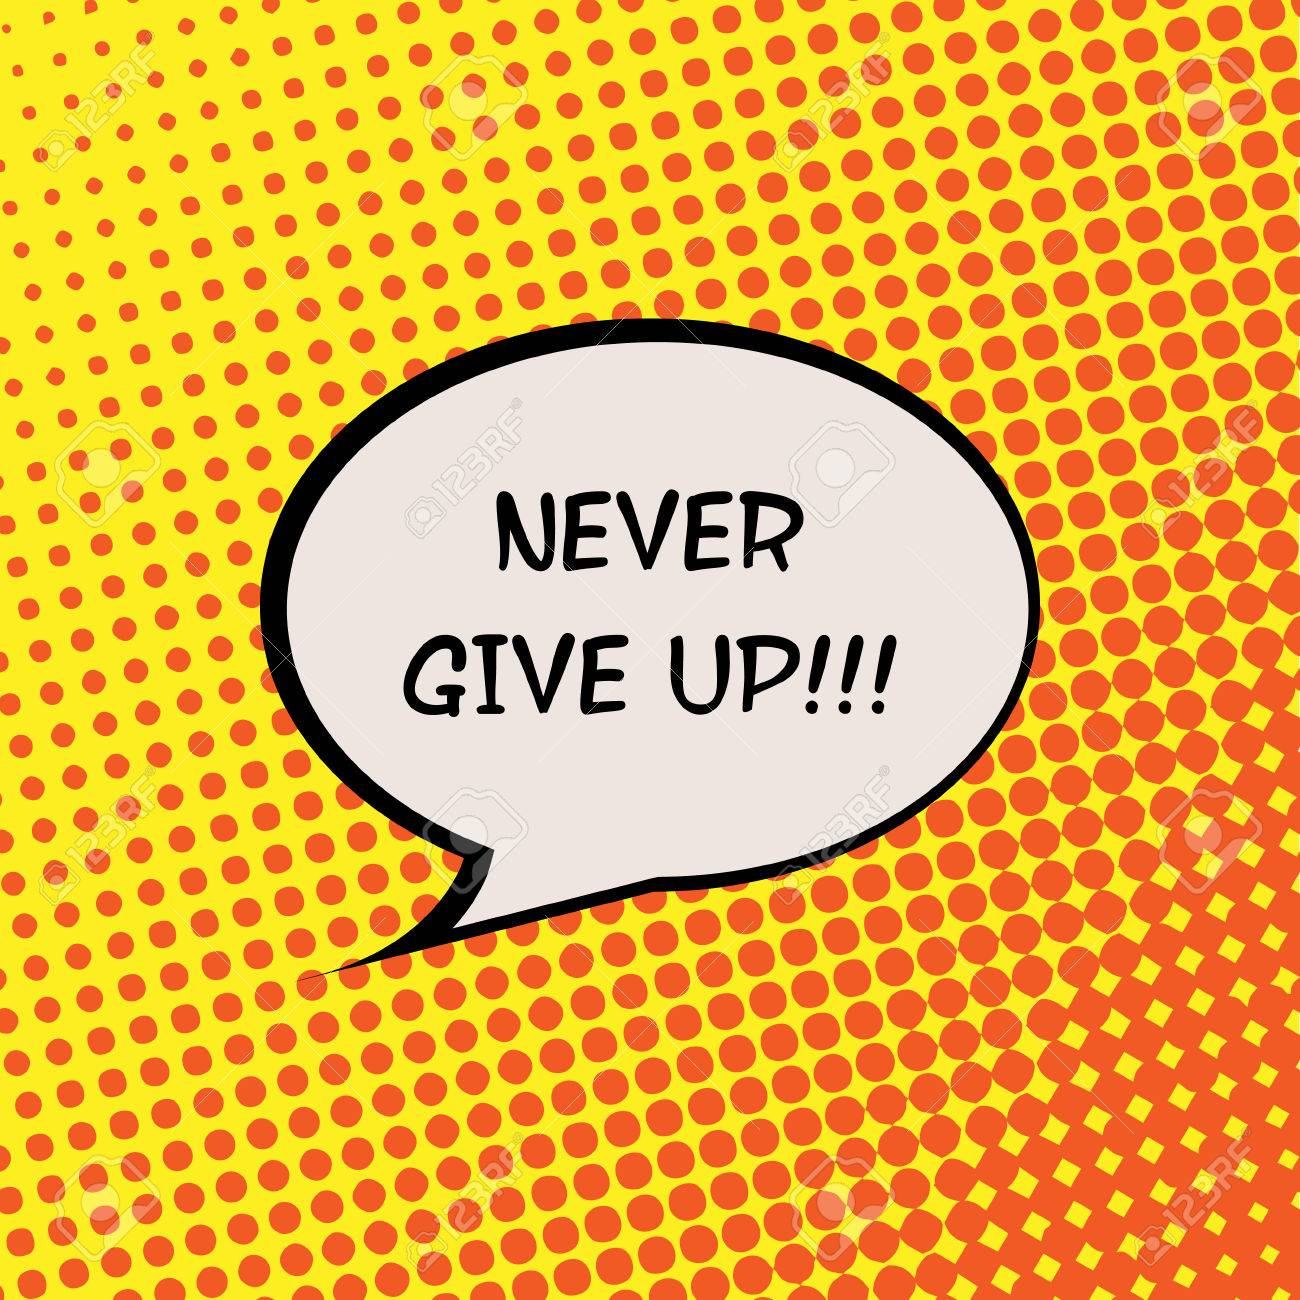 Never Give Up Comics Halftone Background Motivation Quote Poster Typography Vector - 47477154